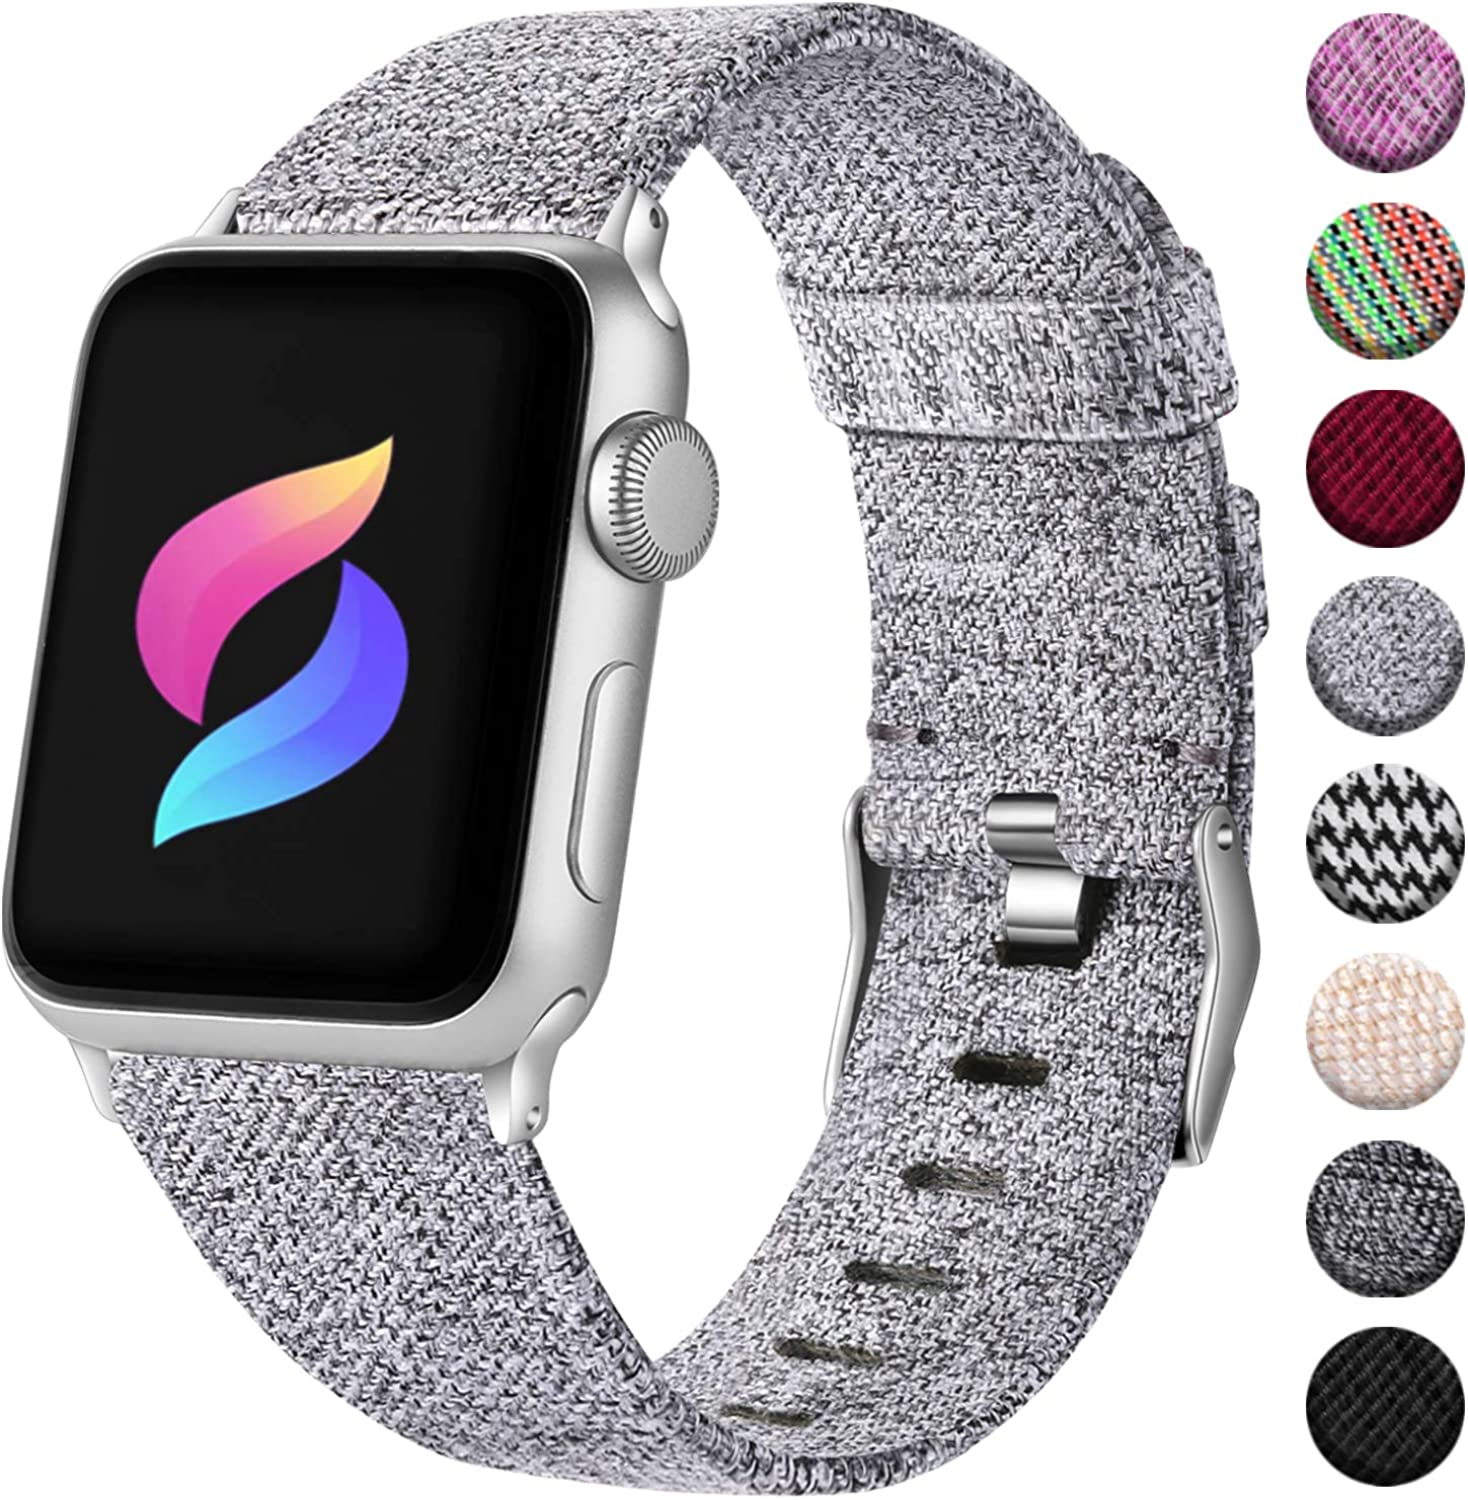 Haveda Fabric Compatible for Apple Watch series 6 40mm 44mm Series 5 4 band, Soft Woven Canvas Nylon Wristband for Apple Watch SE, Apple Watch 38mm 42mm iwatch Series 3 2/1 Men Kids Small Large